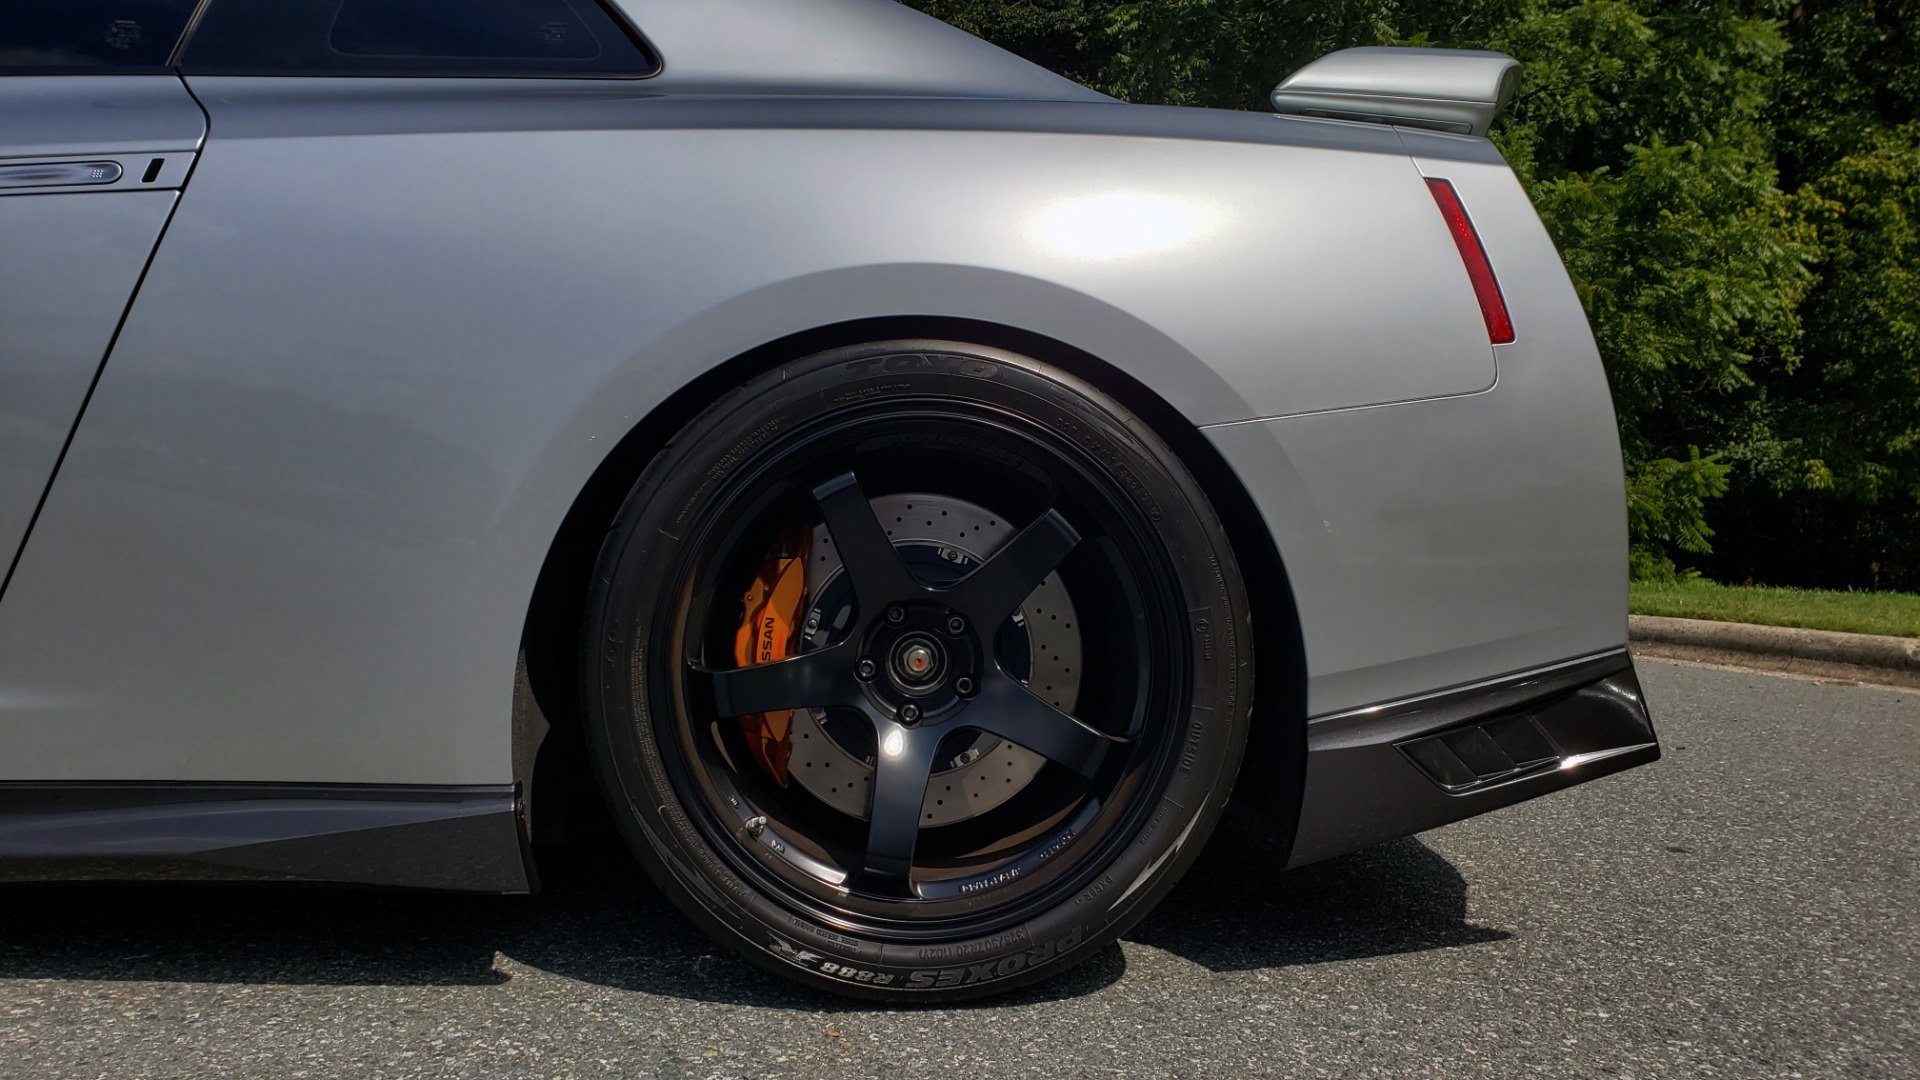 Used 2018 Nissan GT-R PREMIUM / NAV / BOSE / REARVIEW / CUSTOM WHEELS / COIL OVER SHOCKS / TUNED for sale Sold at Formula Imports in Charlotte NC 28227 71